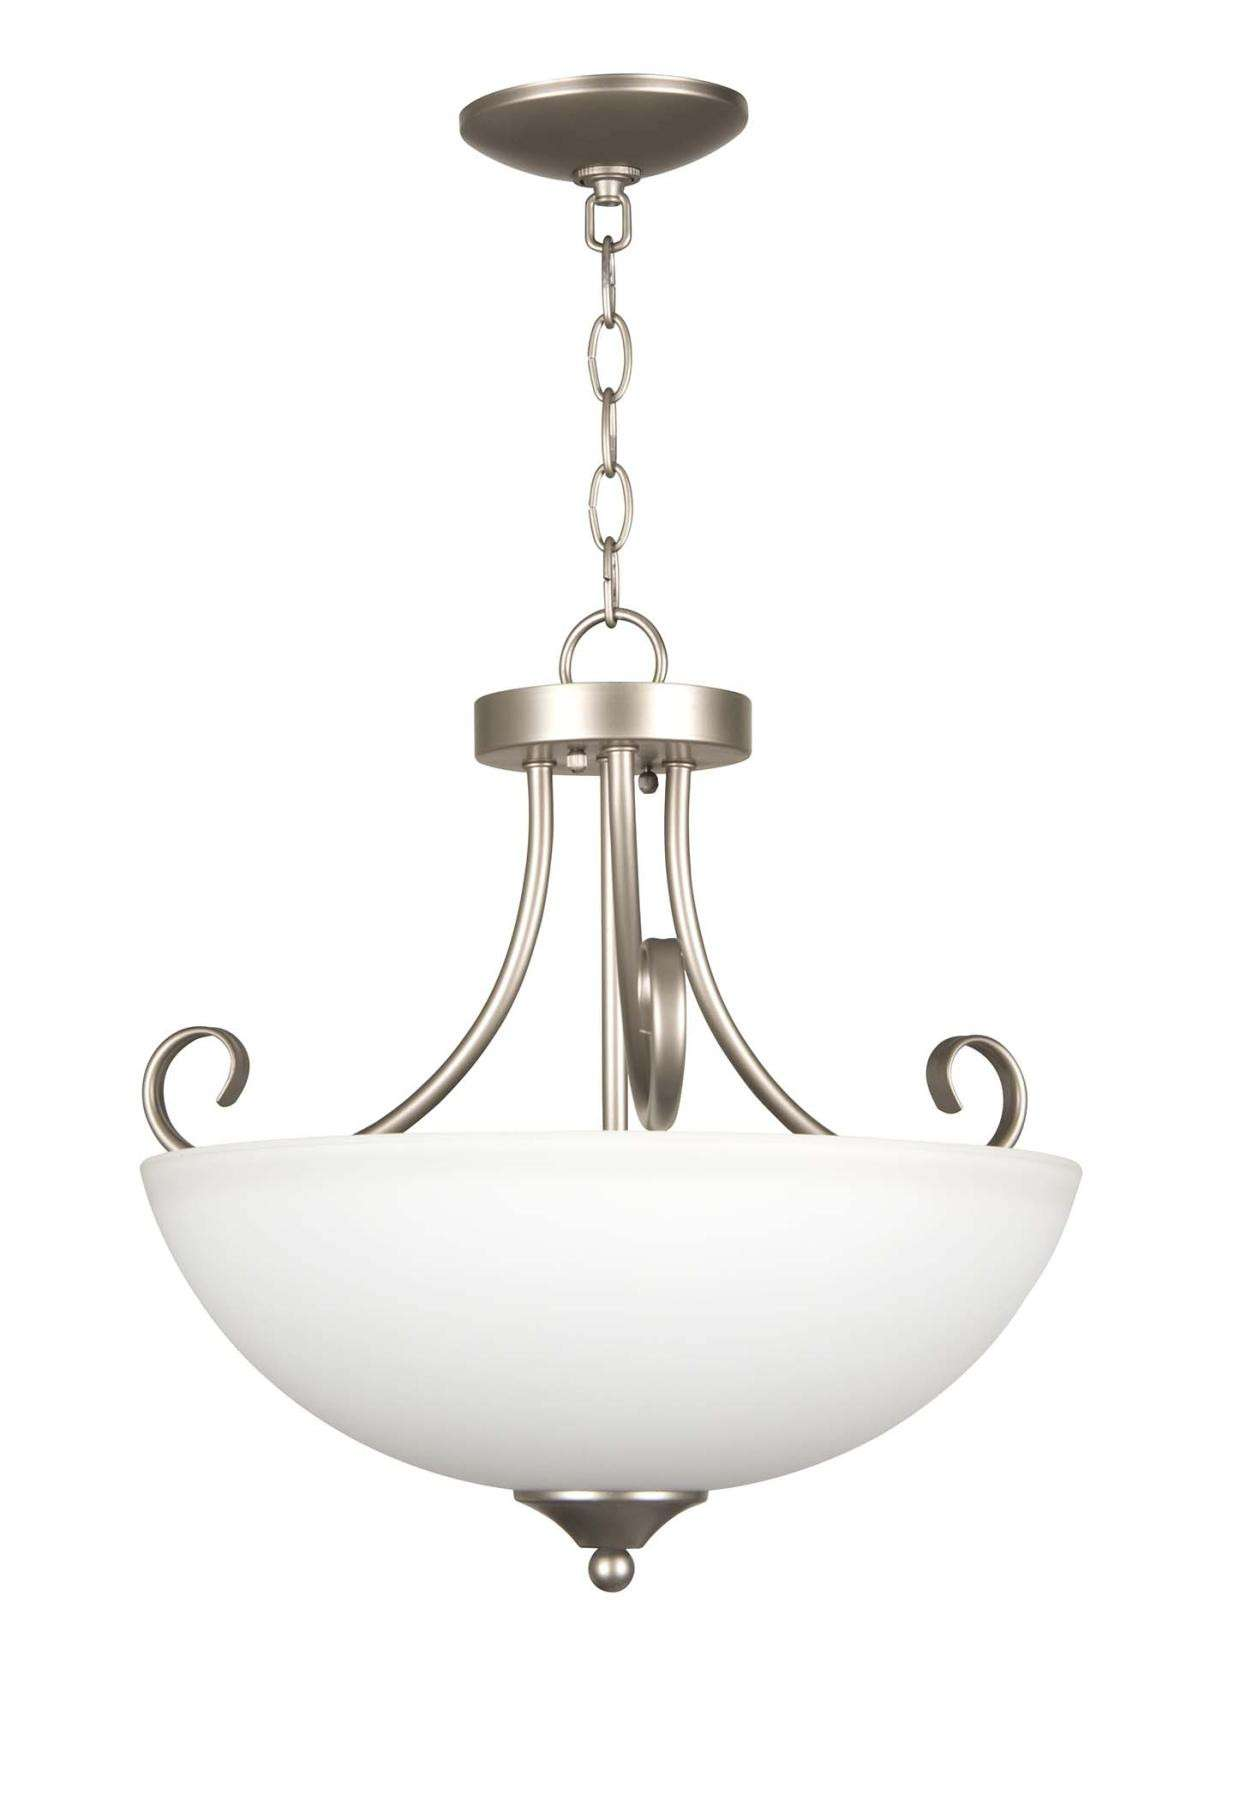 Raleigh - 3 Light Semiflush - Satin Nickel